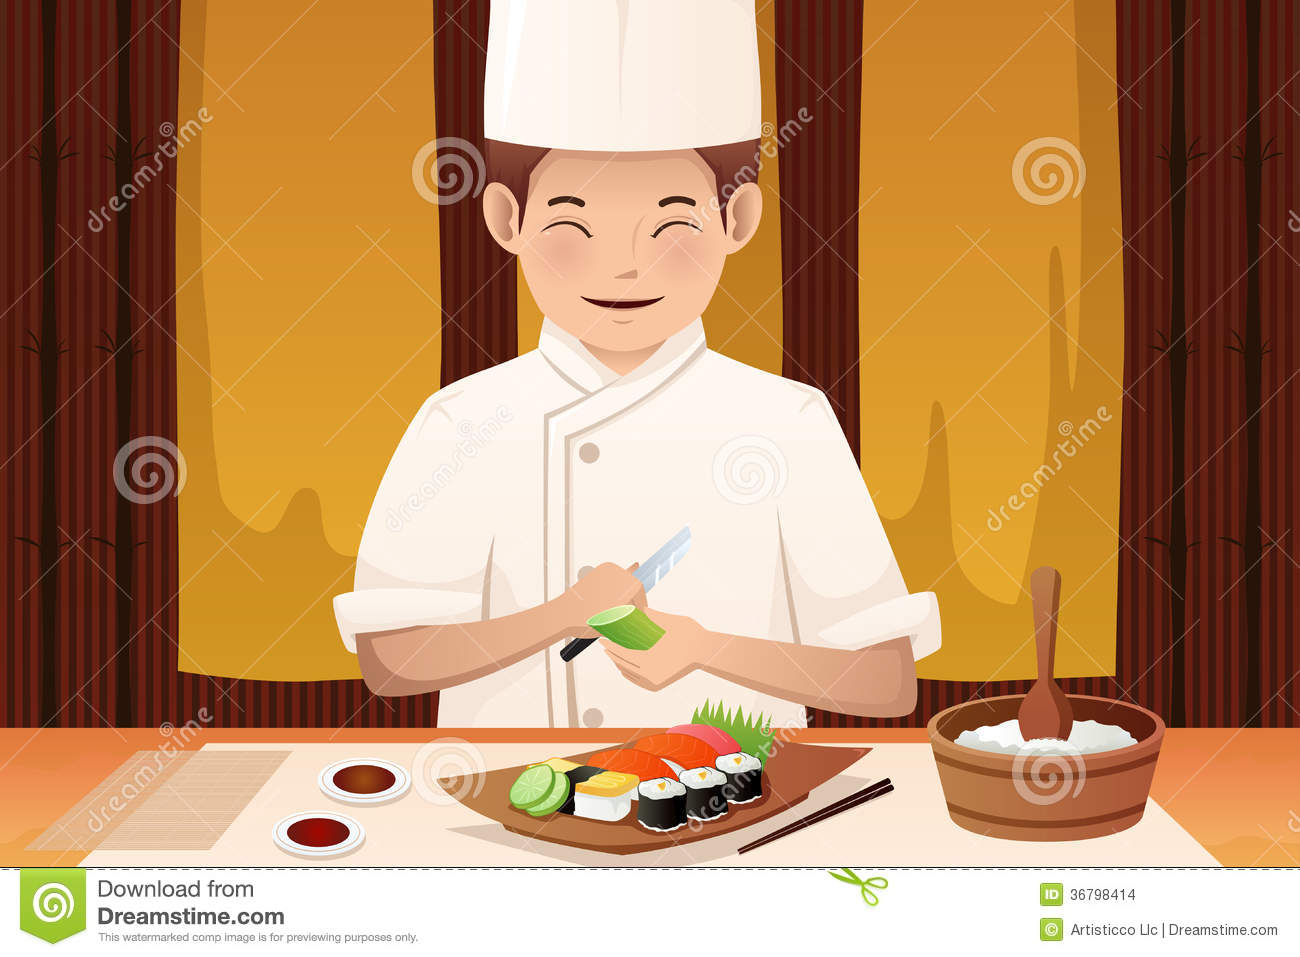 Sushi Restaurant Stock Illustrations 21 389 Sushi Restaurant Stock Illustrations Vectors Clipart Dreamstime